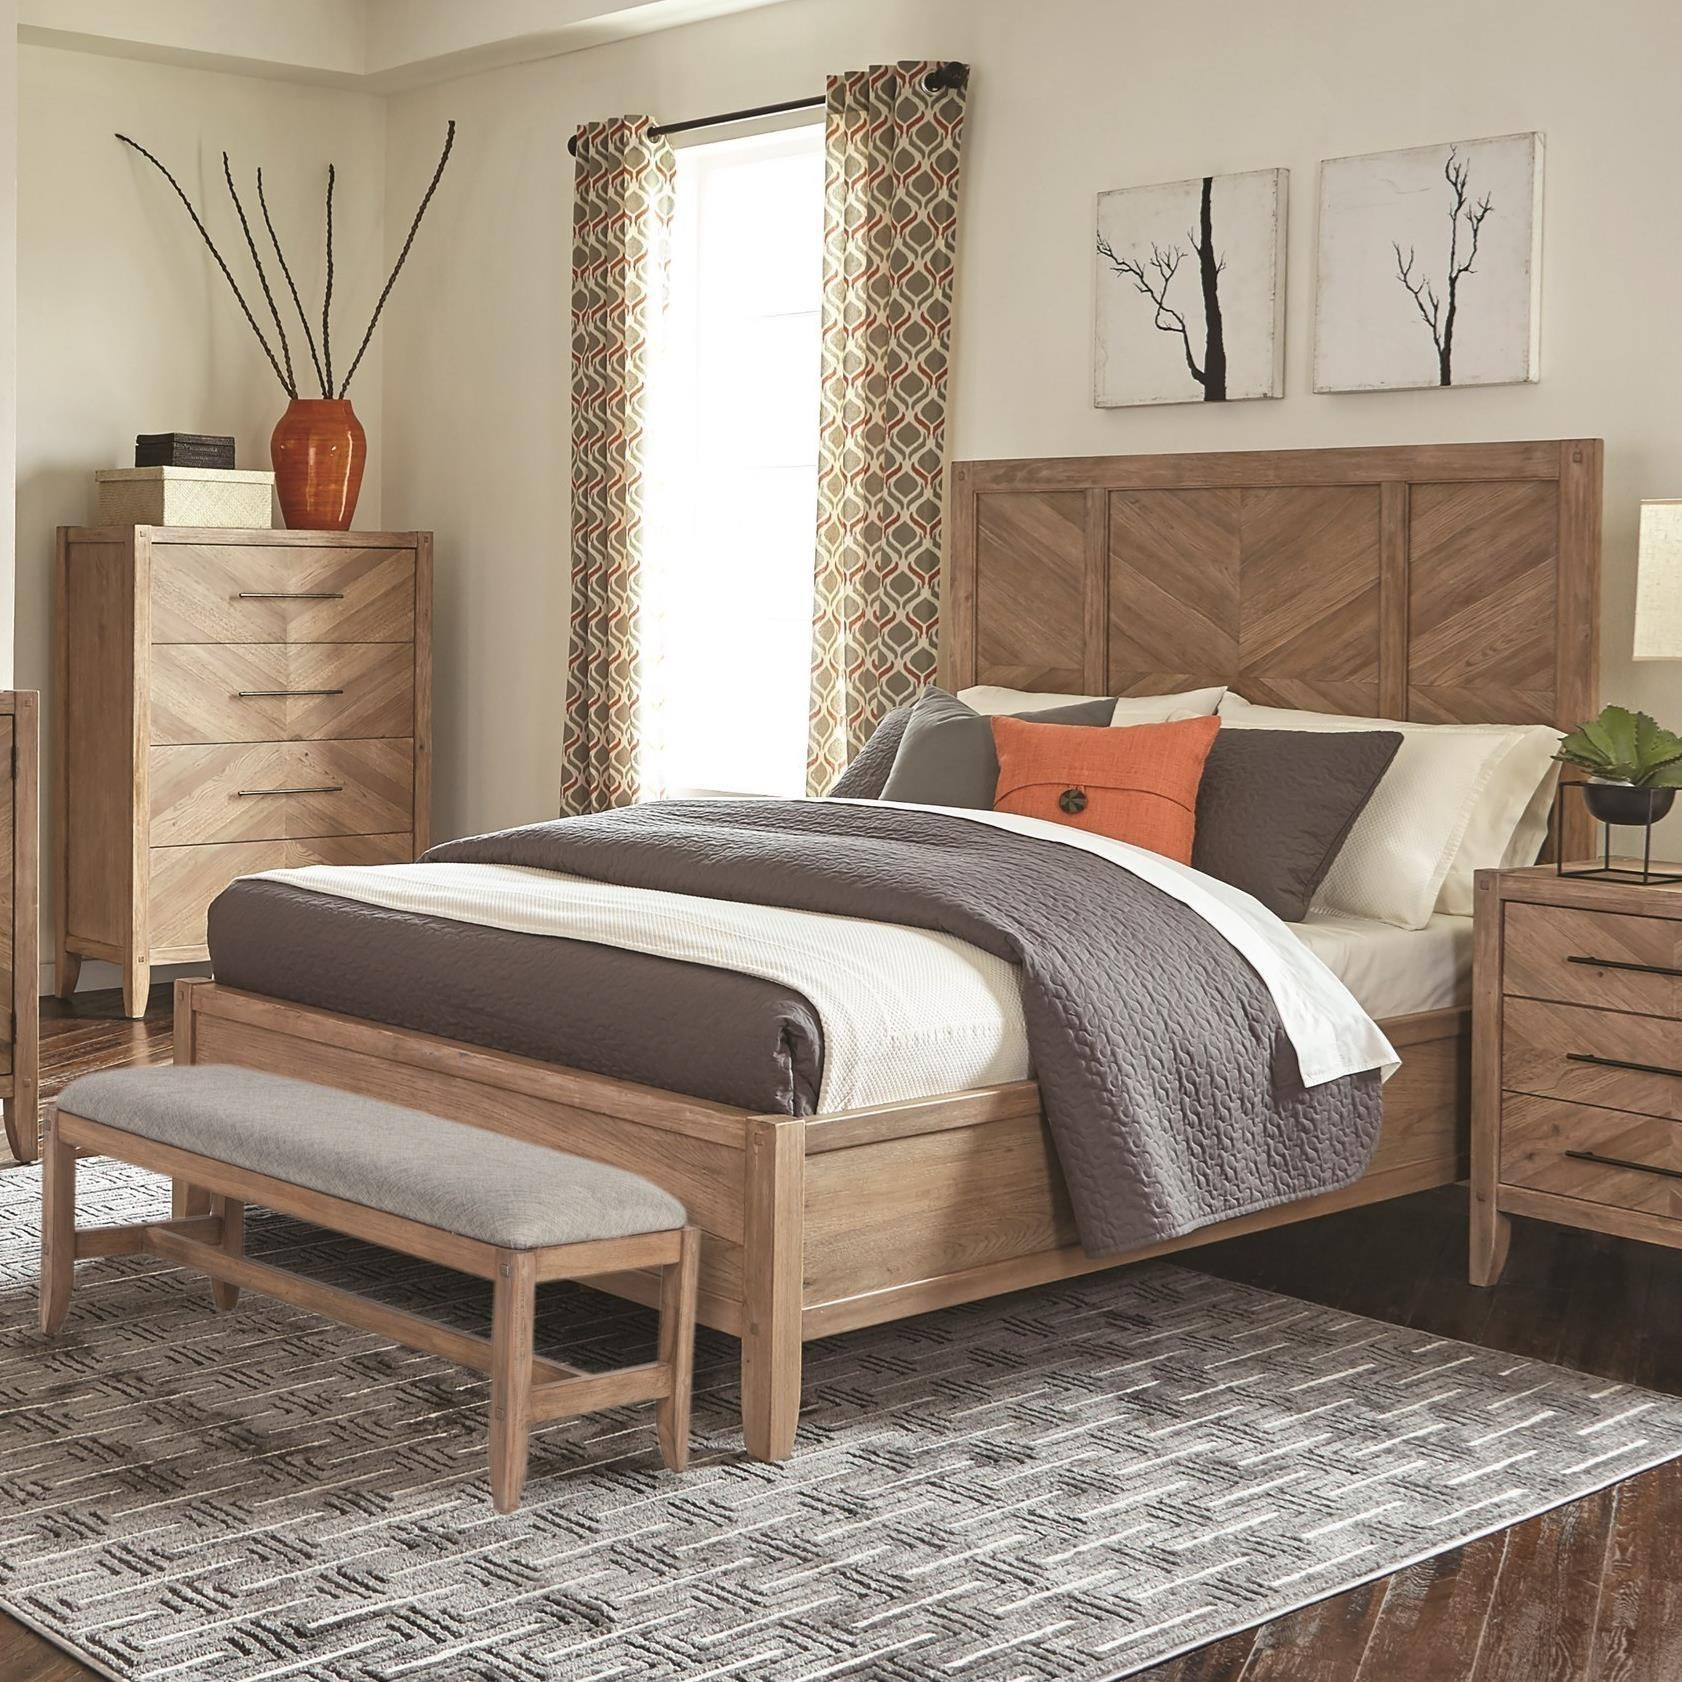 King Bed Frame Design Auburn King Bed With Chevron Inlay Design By Scott Living At Value City Furniture